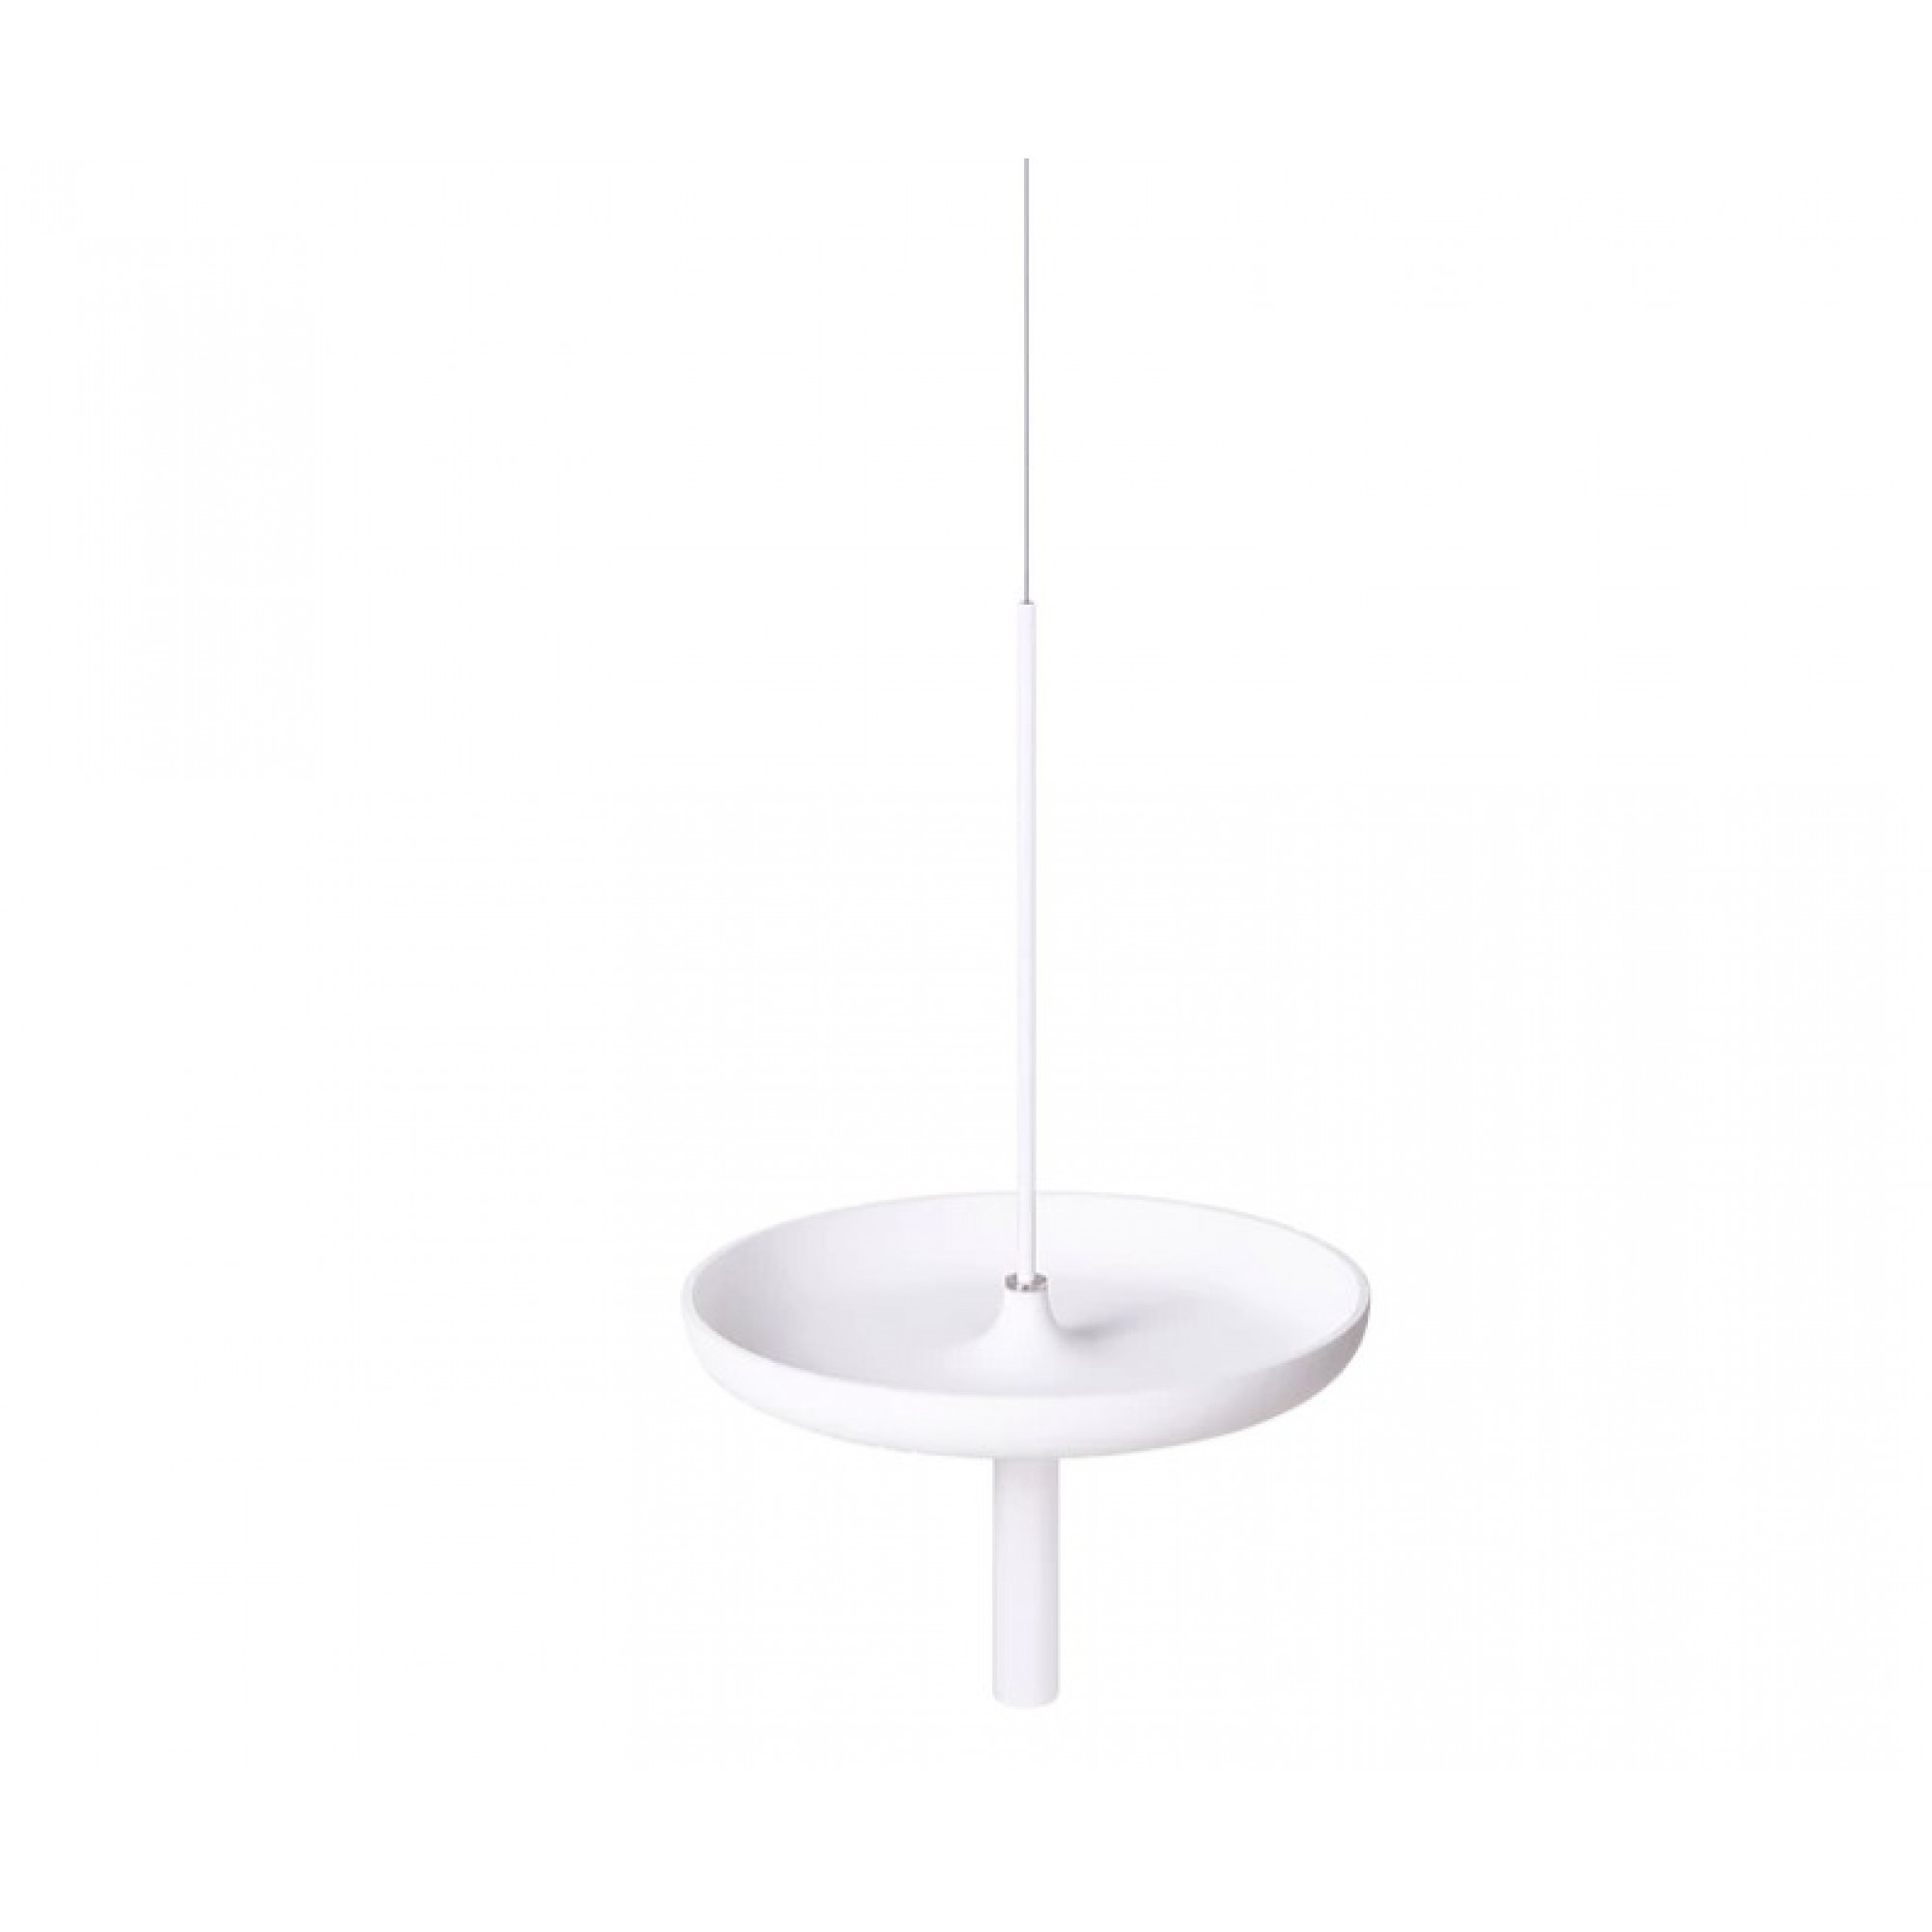 Circulum decorative table, suspended from the ceiling with bowl type tray, White ABS and white accessories